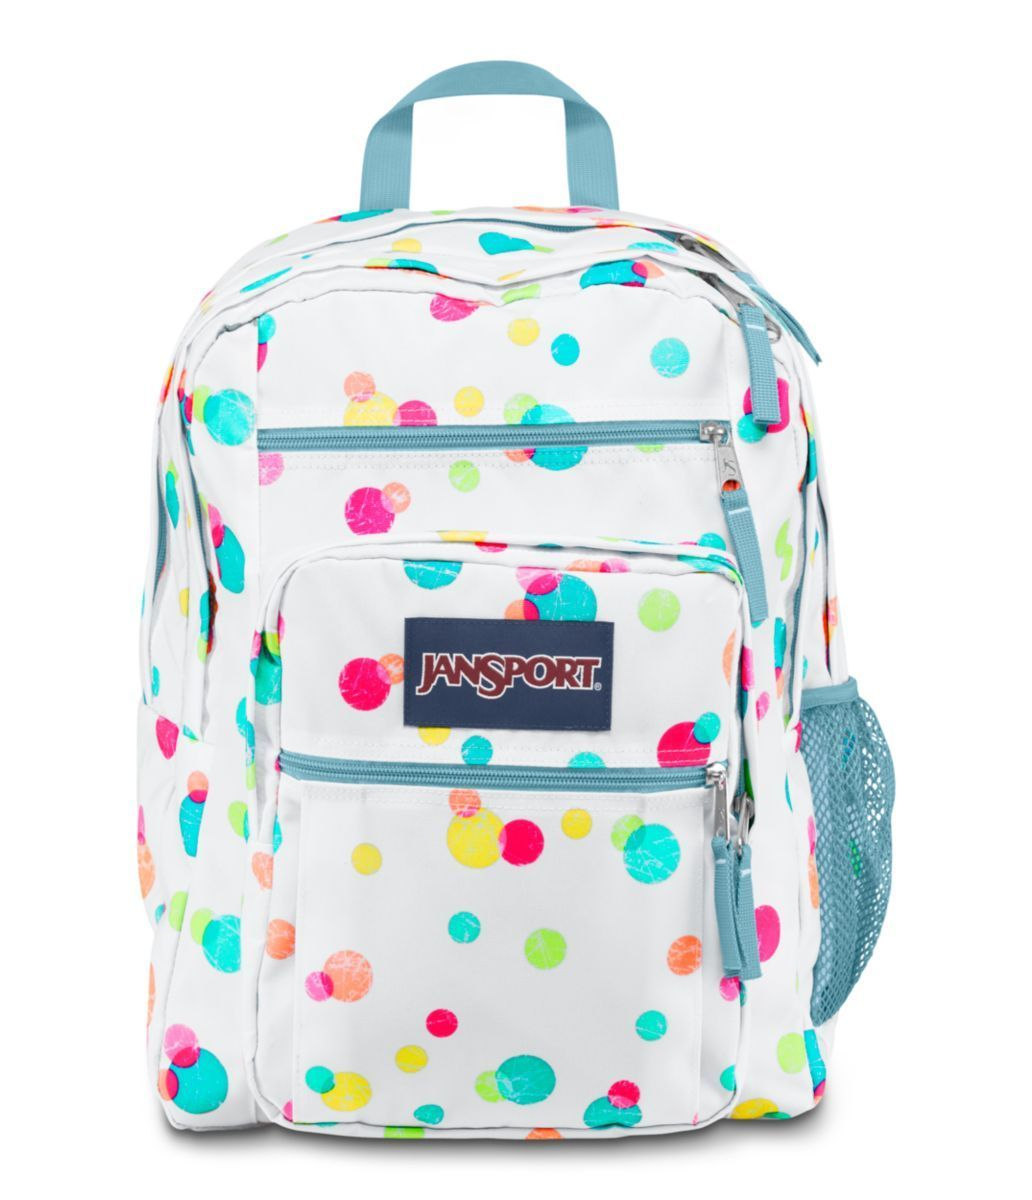 JANSPORT BIG STUDENT BACKPACK SCHOOL BAG - Pink Pansy Confetti ...